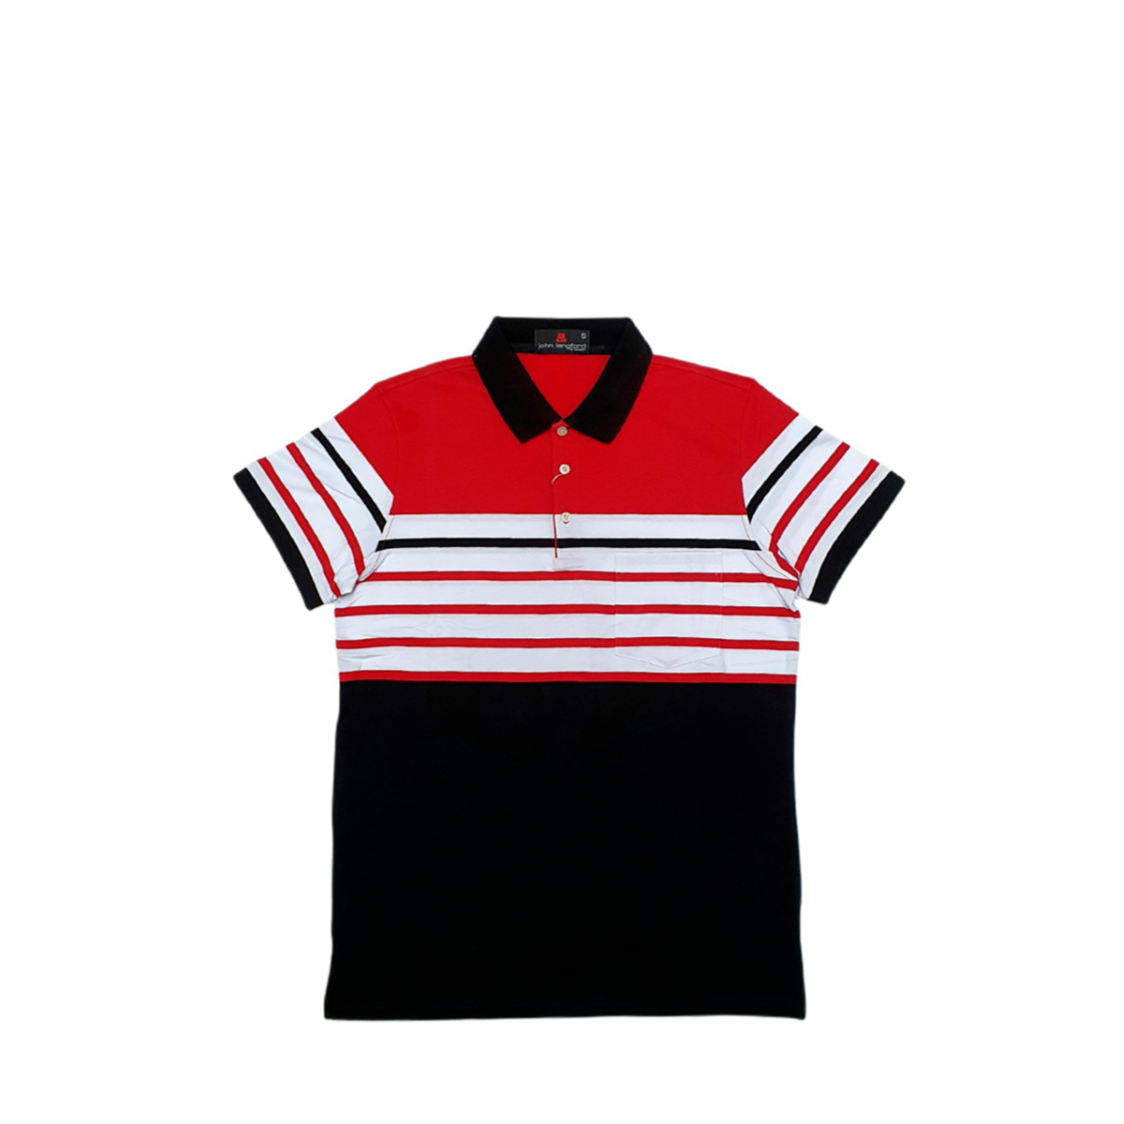 John Langford Stretchable Striped Polo T-Shirt with Pocket Red